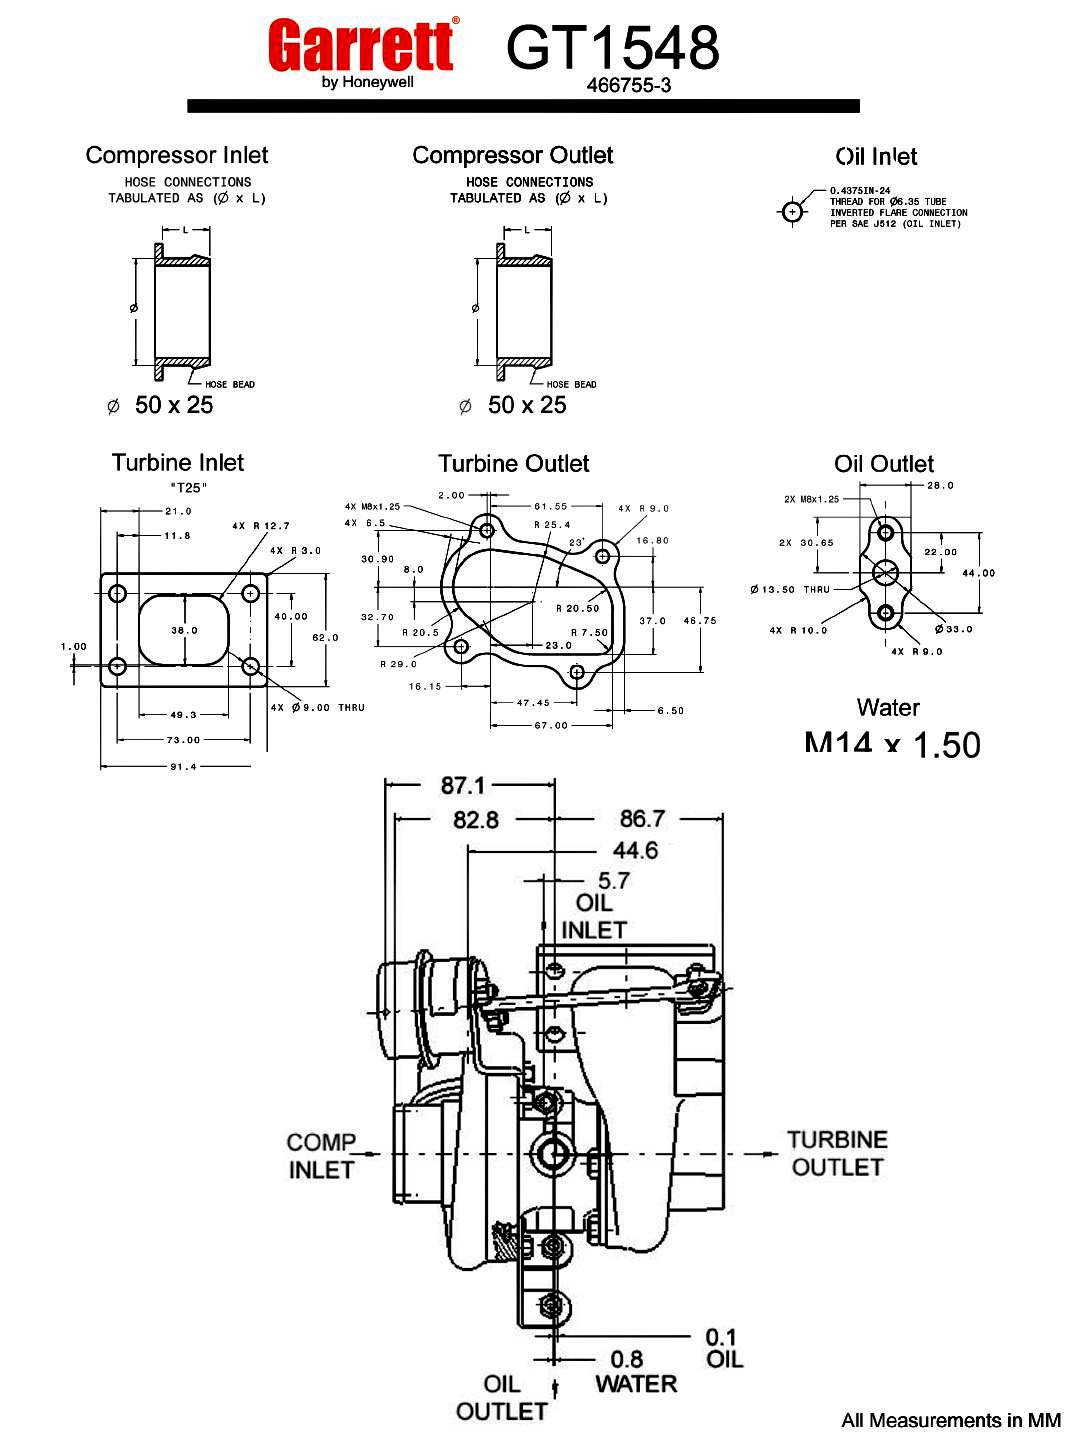 saab 2 3 turbo engine diagram saab 95 engine diagram ... 1985 saab 900 wiring diagram saab 93 wiring diagram download #11